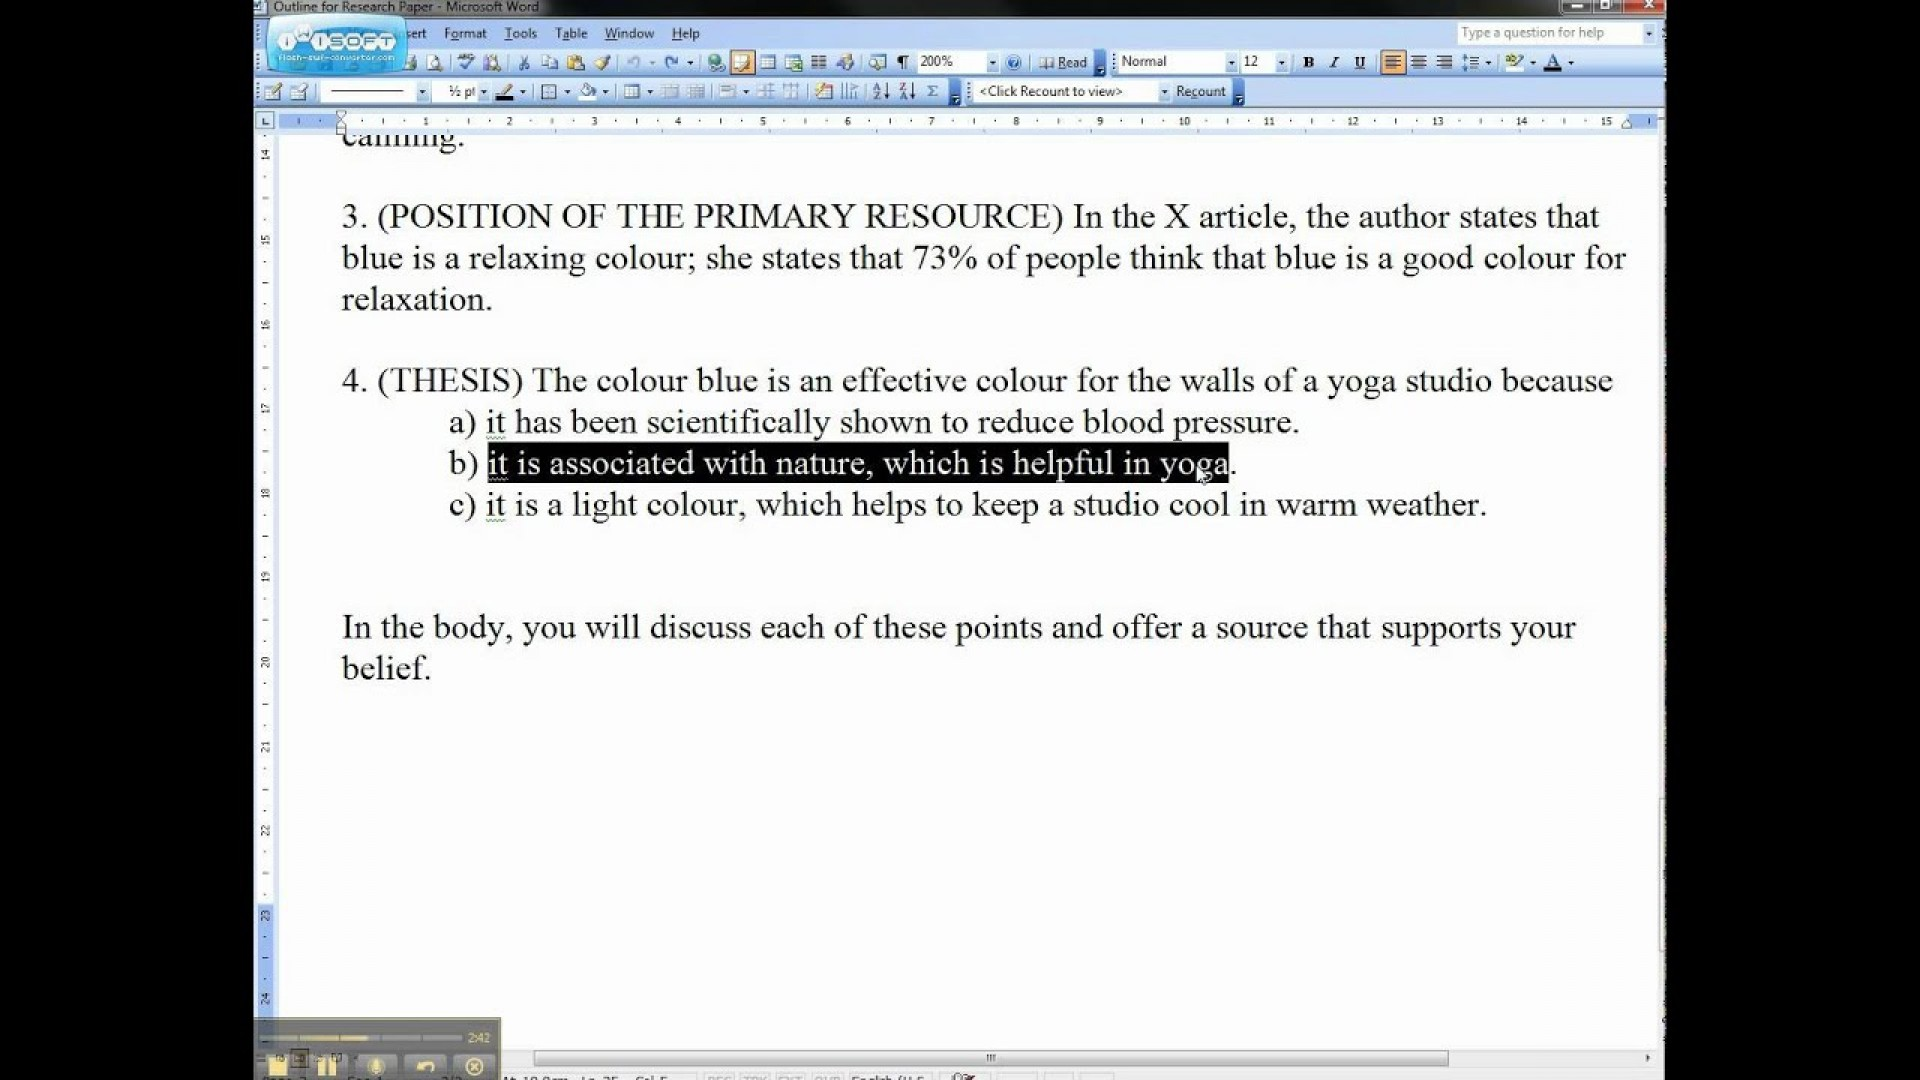 016 Thesis In Essay Example Examples Of Statement An How To Write For Expository Maxresde Informative About Yourself Ppt Argumentative Pdf Analysis High School Sensational Beauty Definition Based Paper 1920